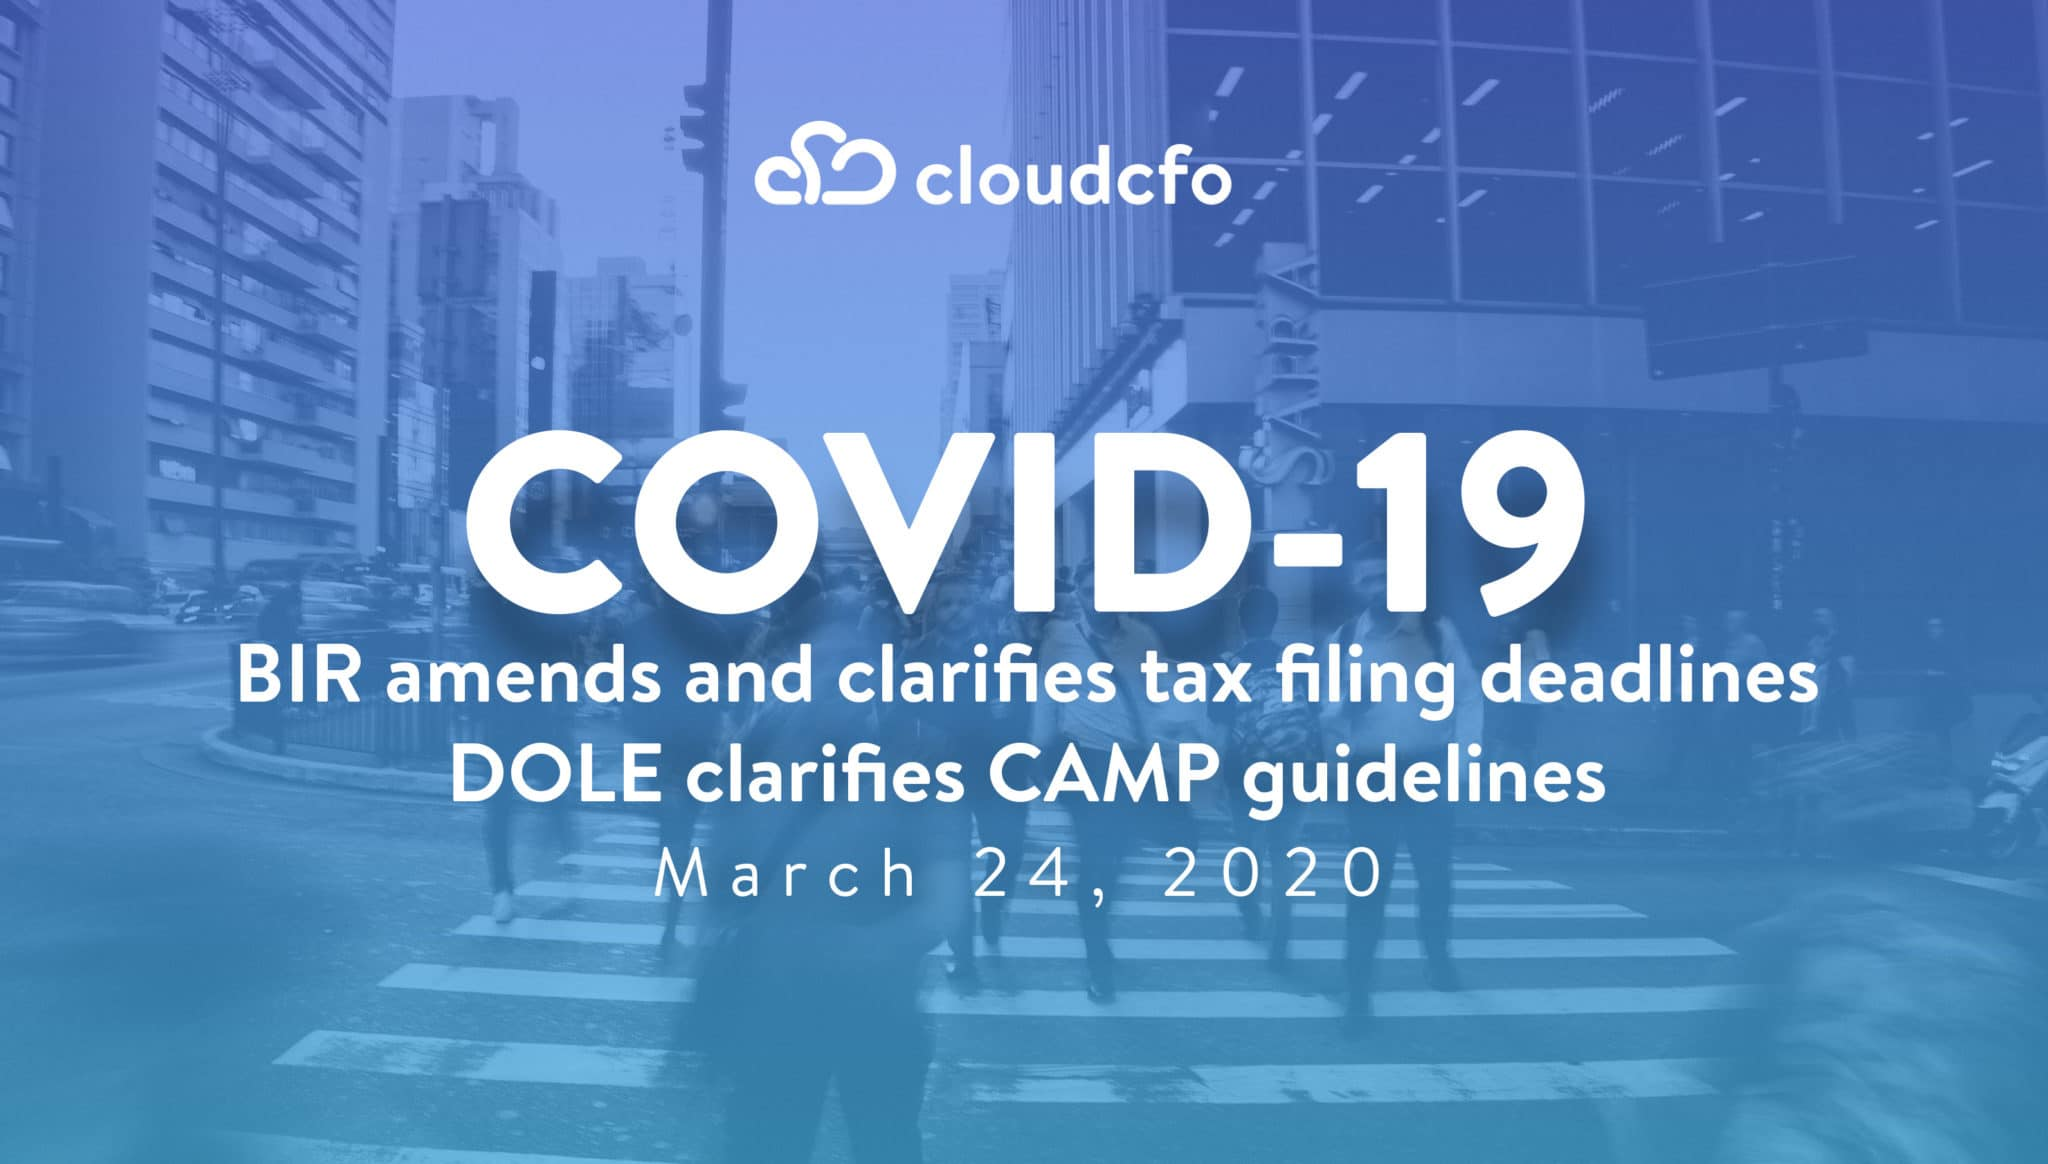 COVID-19: BIR Amends and Clarifies Filing Deadlines; DOLE clarifies CAMP Guidelines – 24 March 2020